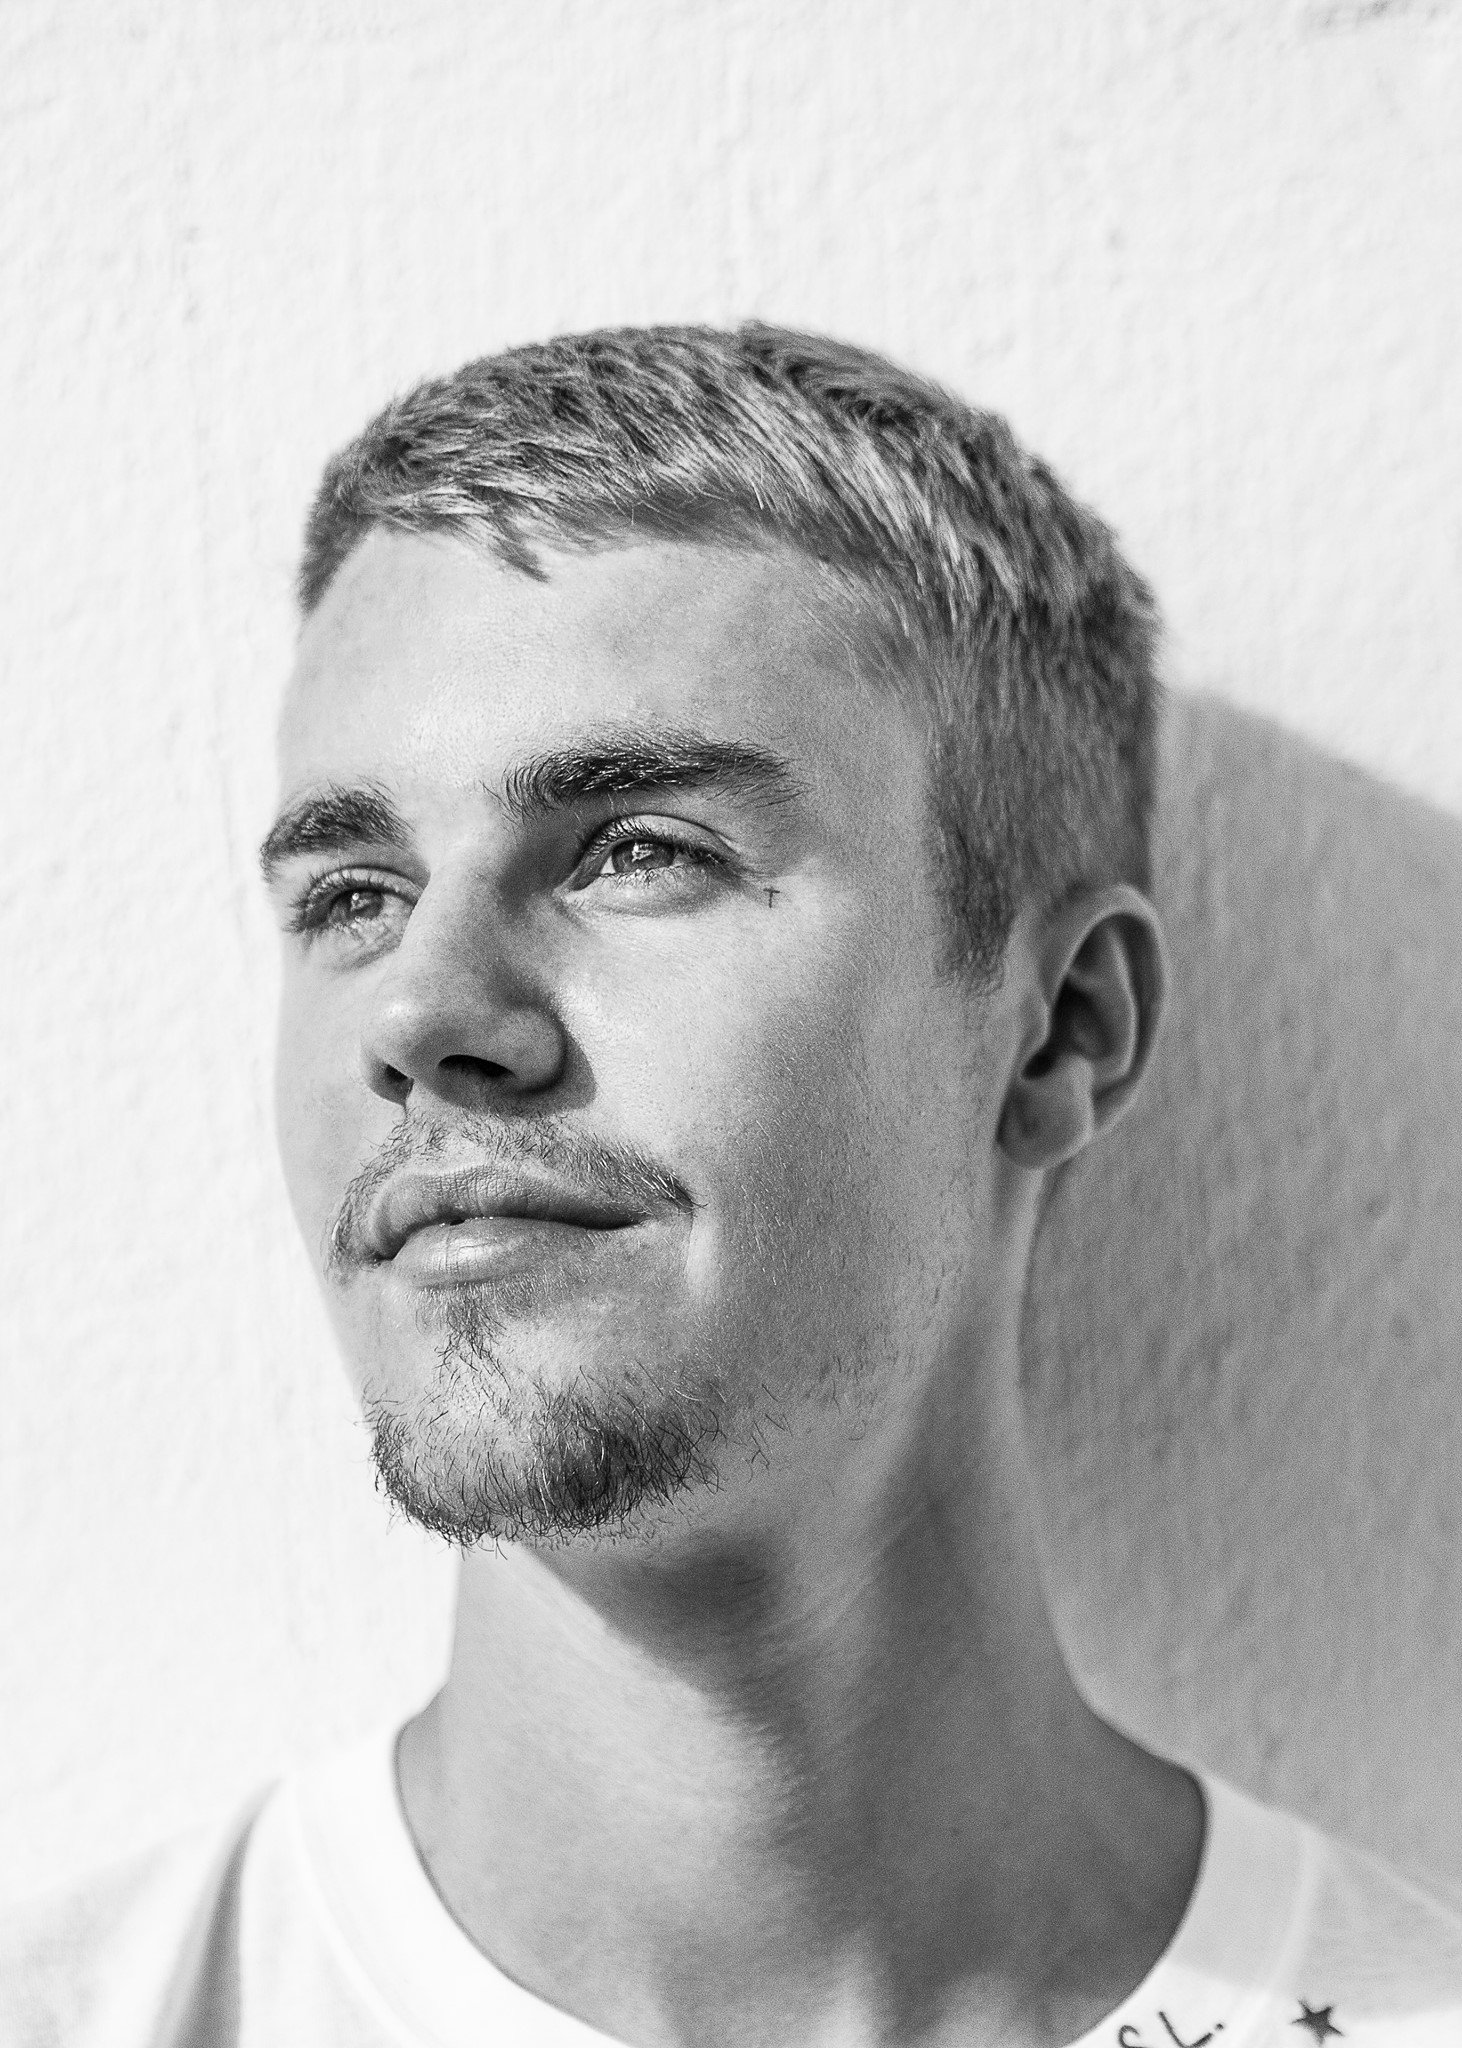 Happy 24th birthday to Justin Bieber!